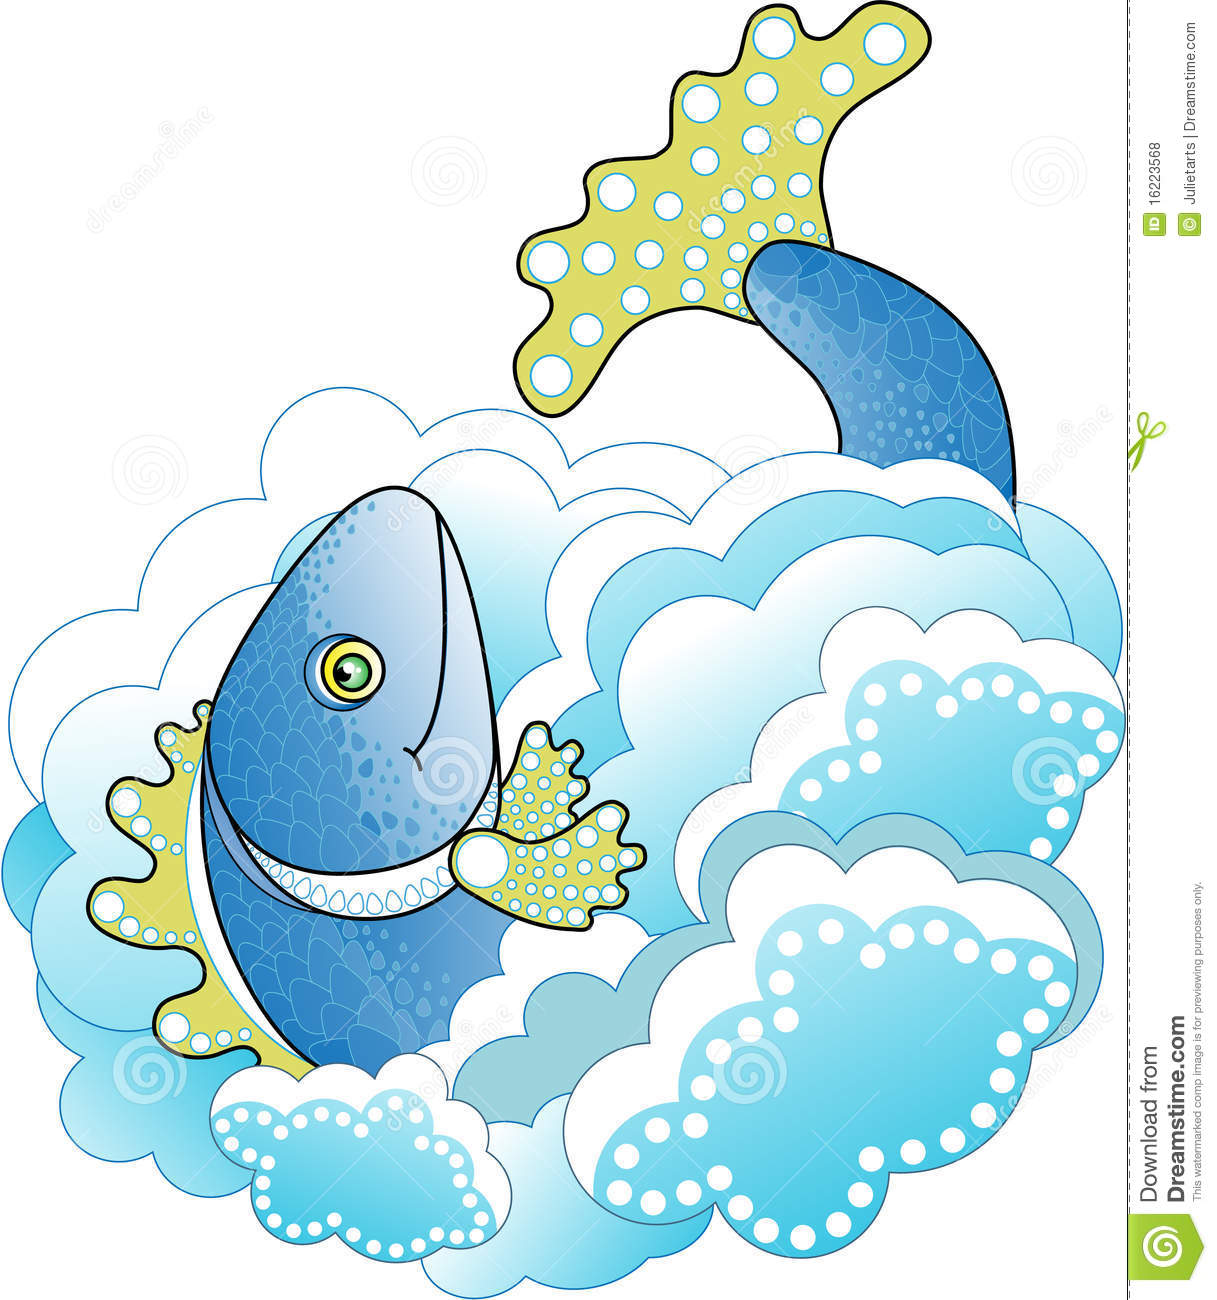 Big Blue Fish In The Sea Royalty Free Stock Photos Image